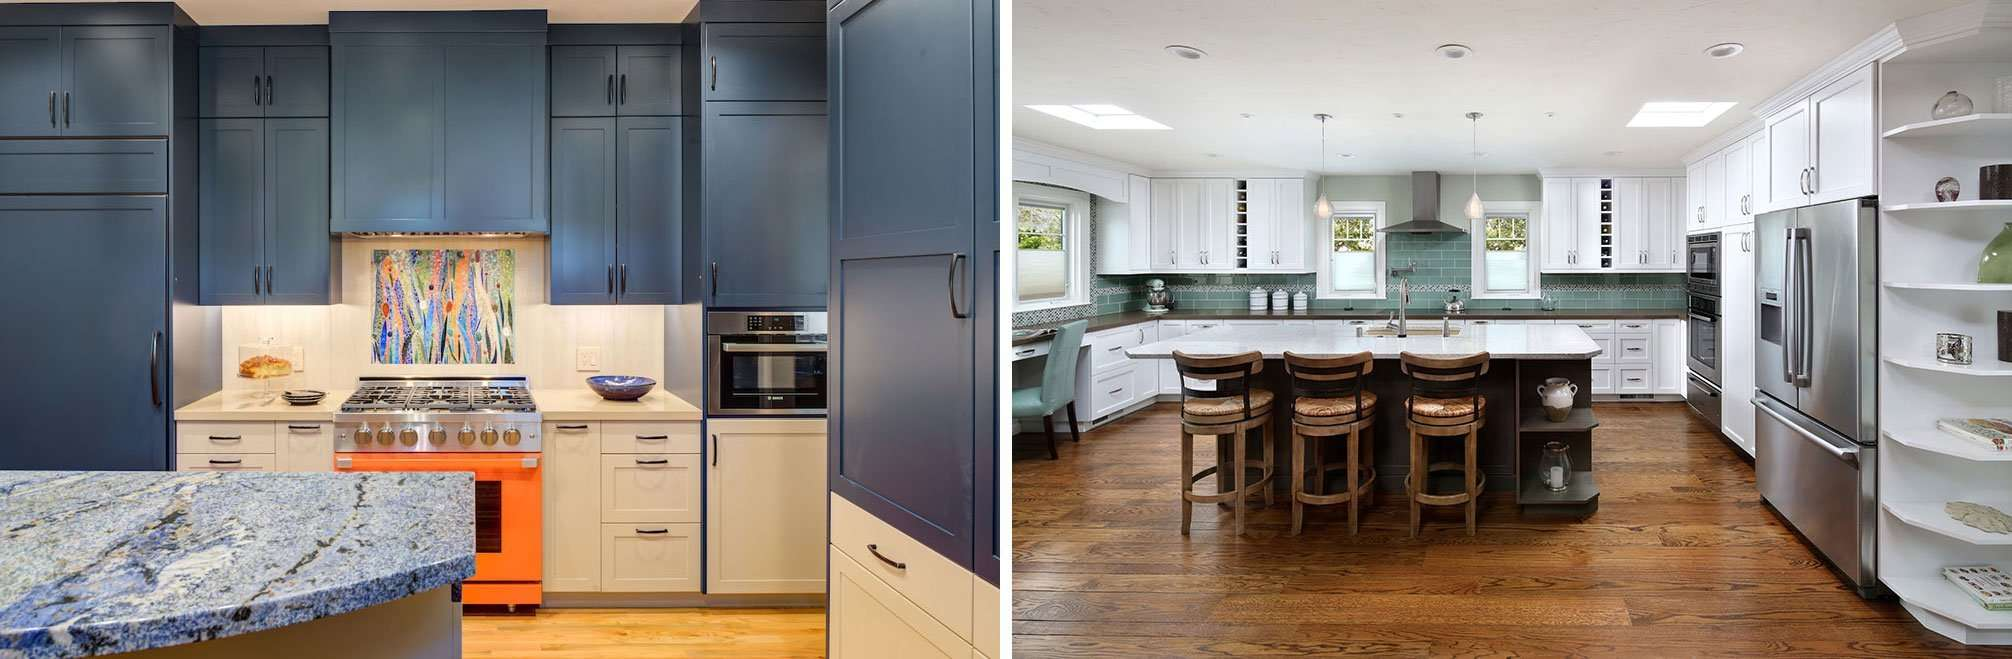 Creating Contrast With Kitchen Cabinets Harrell Remodeling Inc